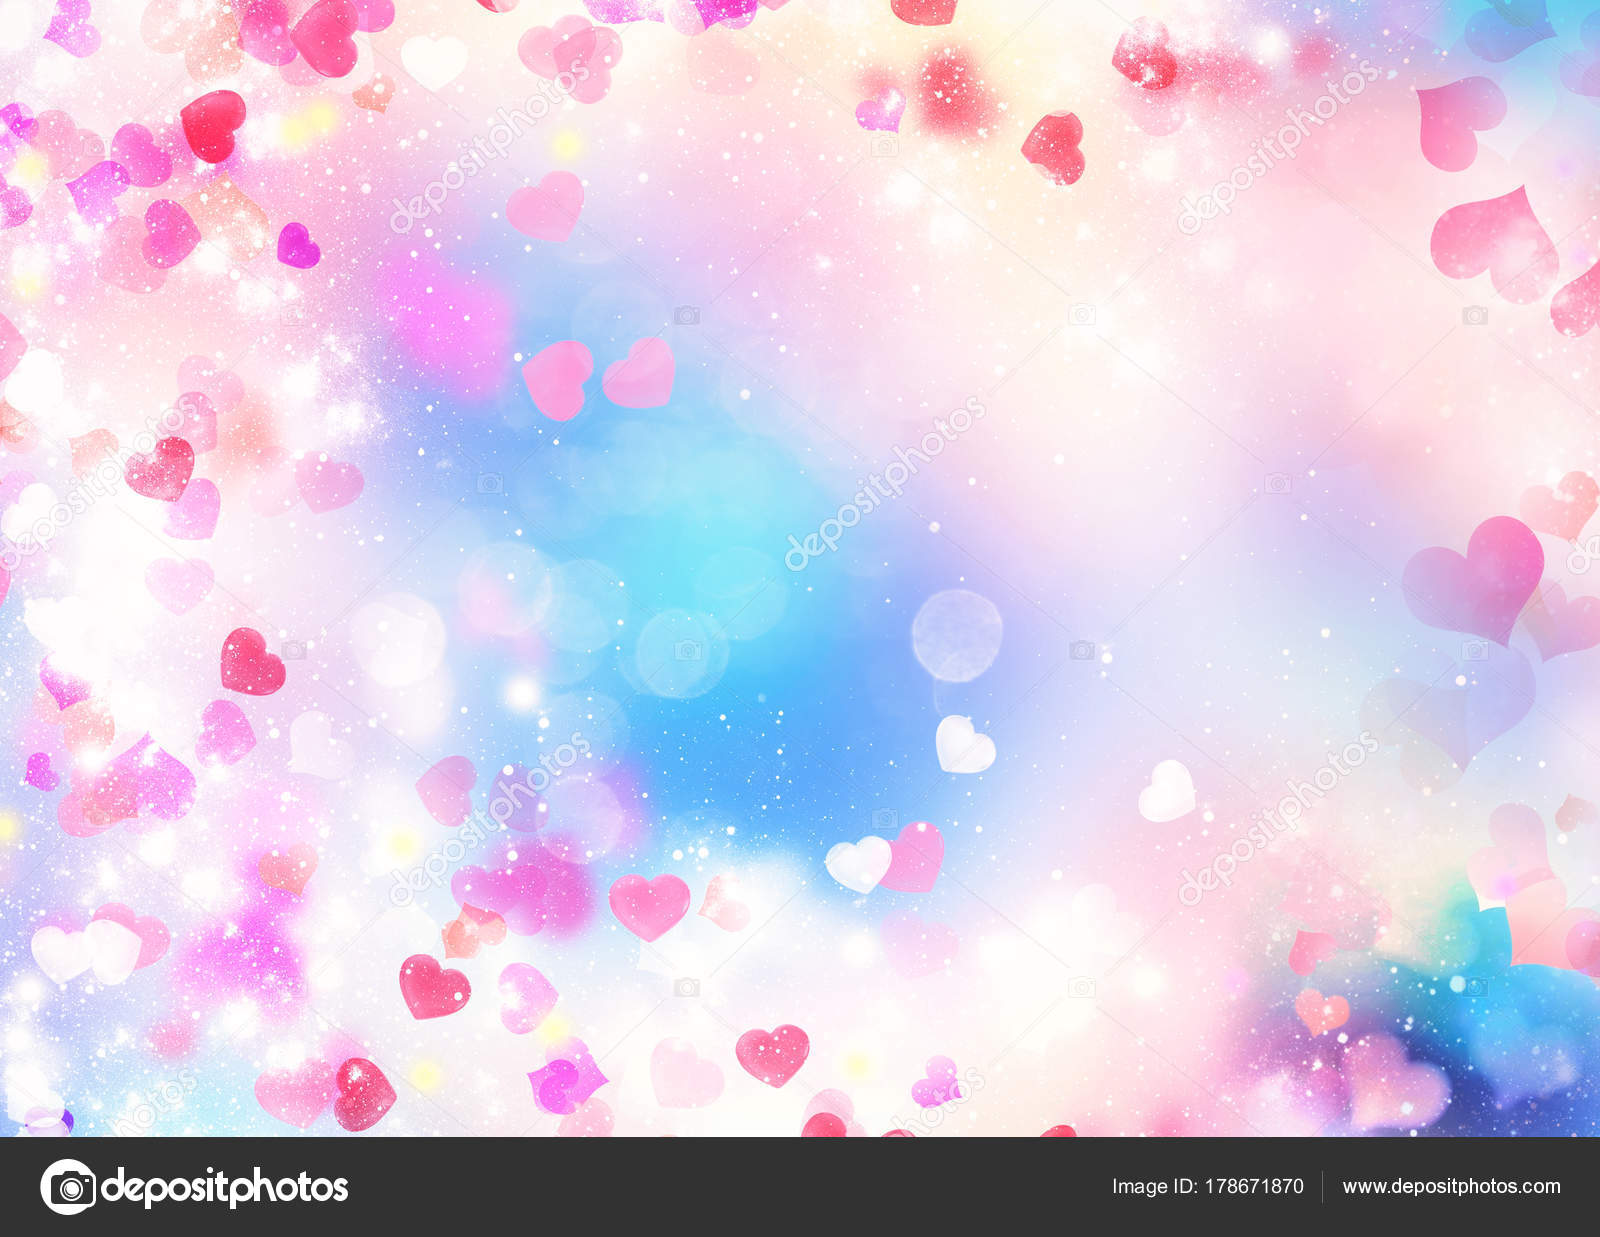 Valentines Day Blurred Background Hearts Illustration Stock Photo